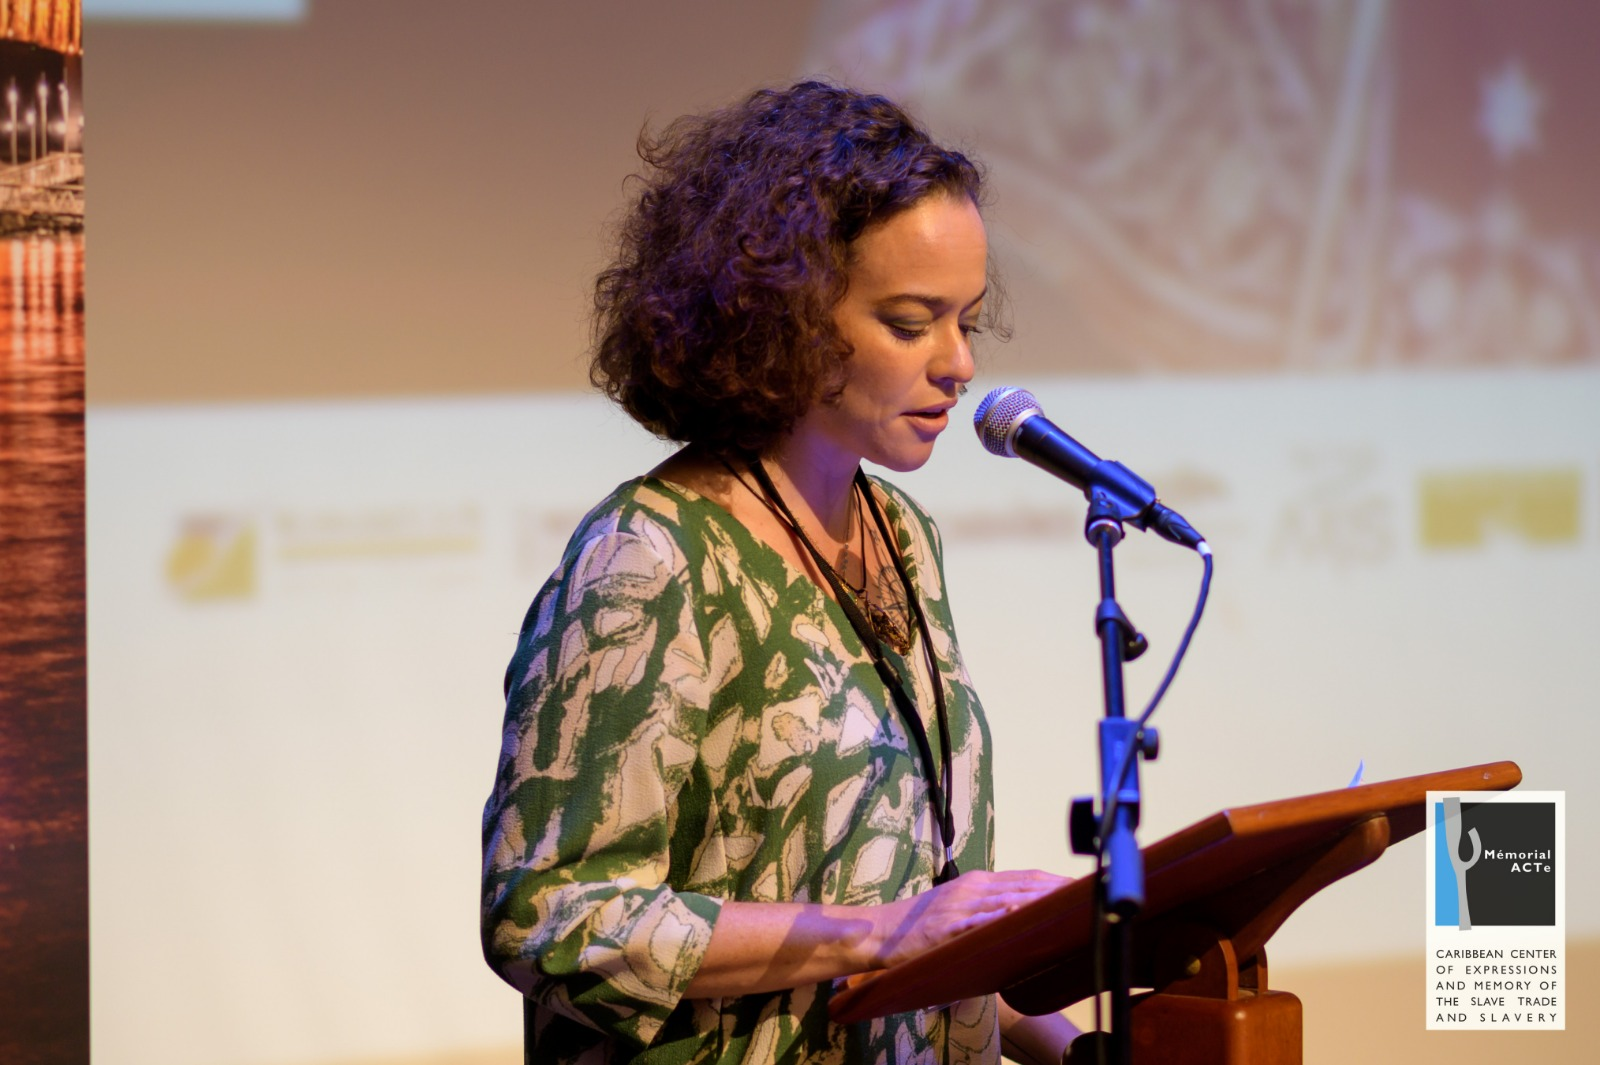 Chief Curator, Holly Bynoe, announcing the hosting of the next convening of Tilting Axis 6 which will be held in The Bahamas at the NAGB. Image courtesy Guillaume Aricique and Memorial ACTe